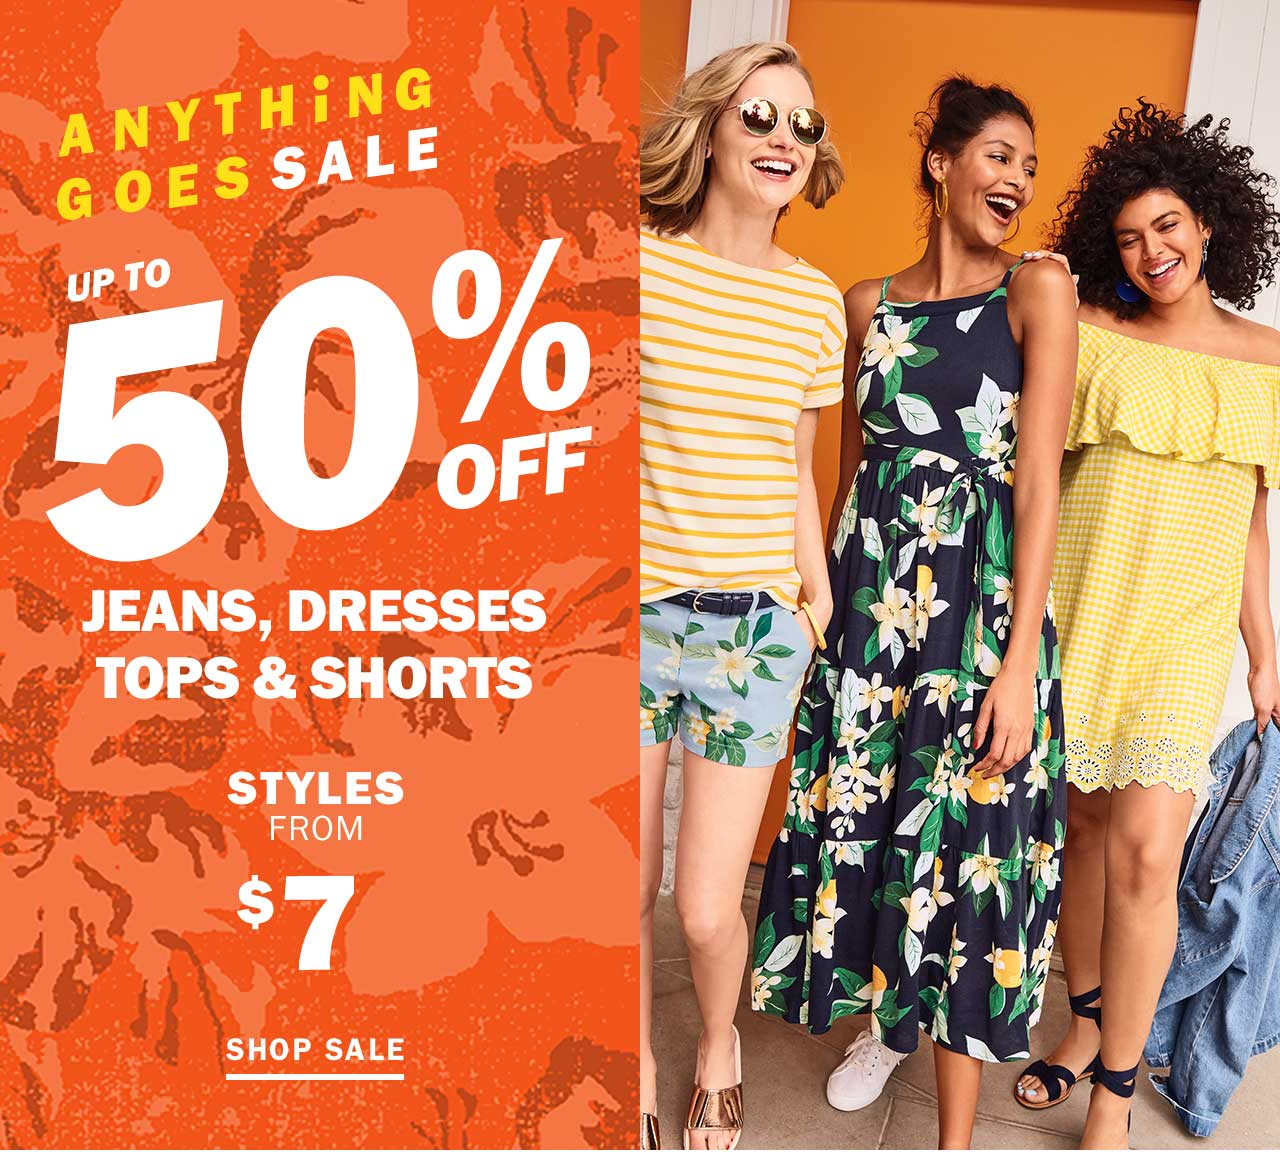 UP TO 50% OFF JEANS, DRESSES TOPS & SHORTS | SHOP SALE